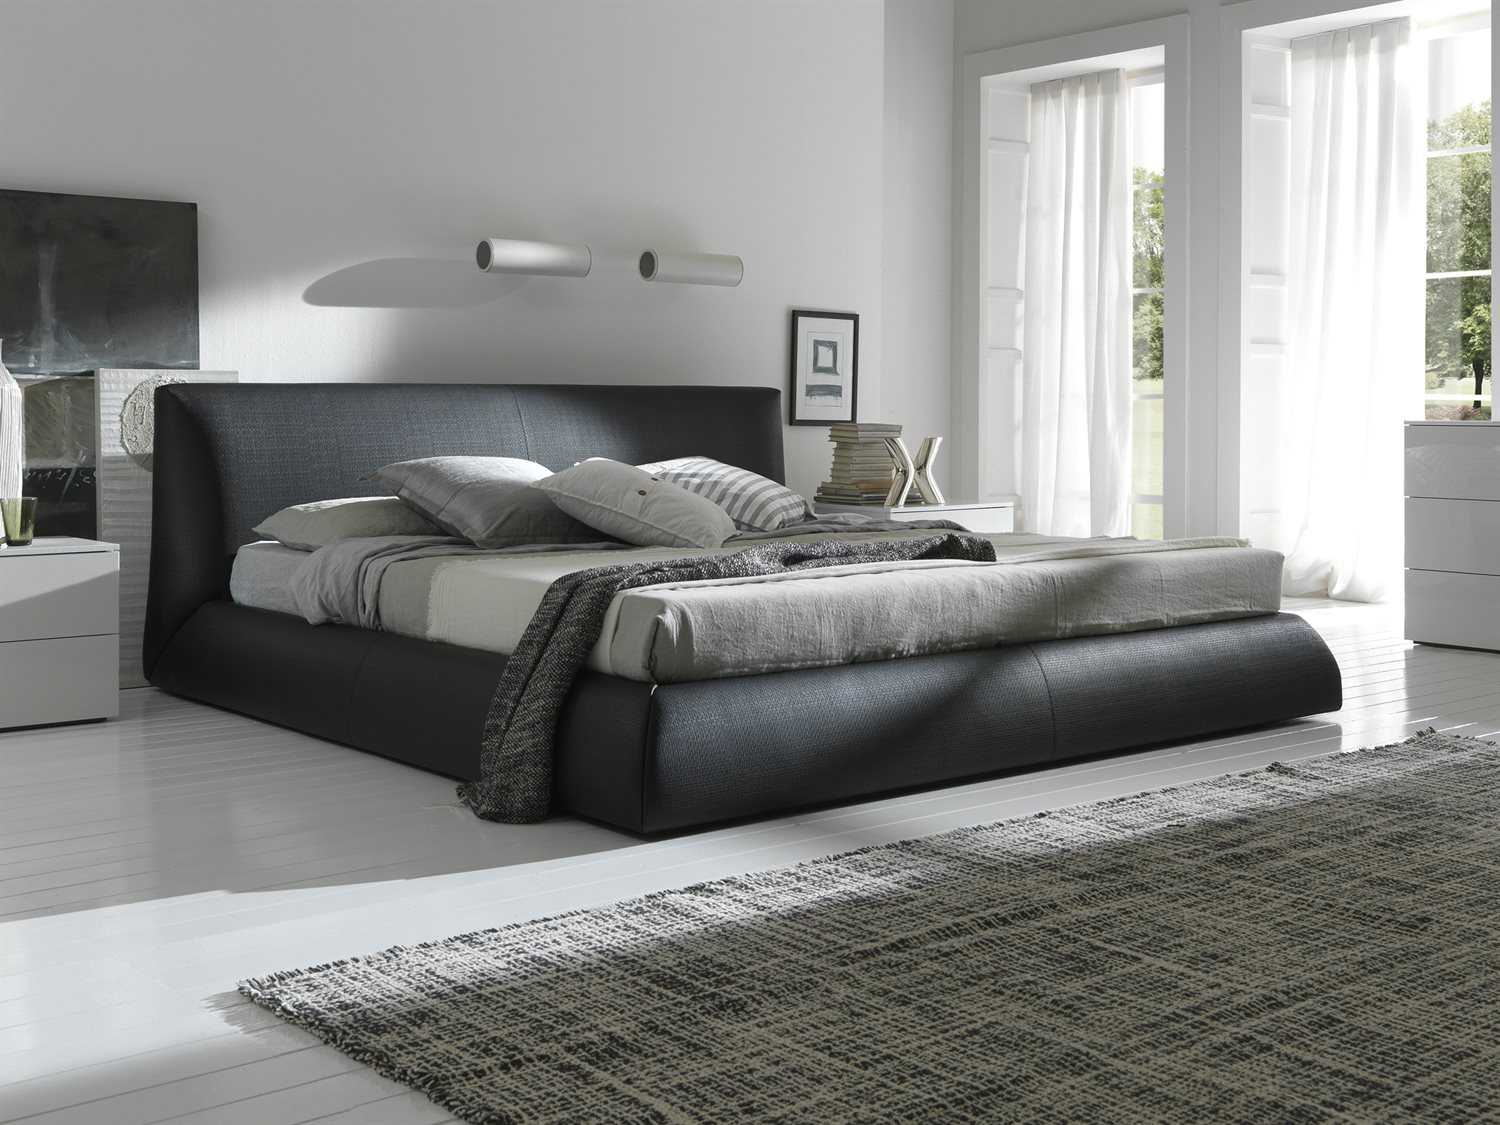 size platform storage black also plans ideas with drawers inspirations awesome queen fabulous bed